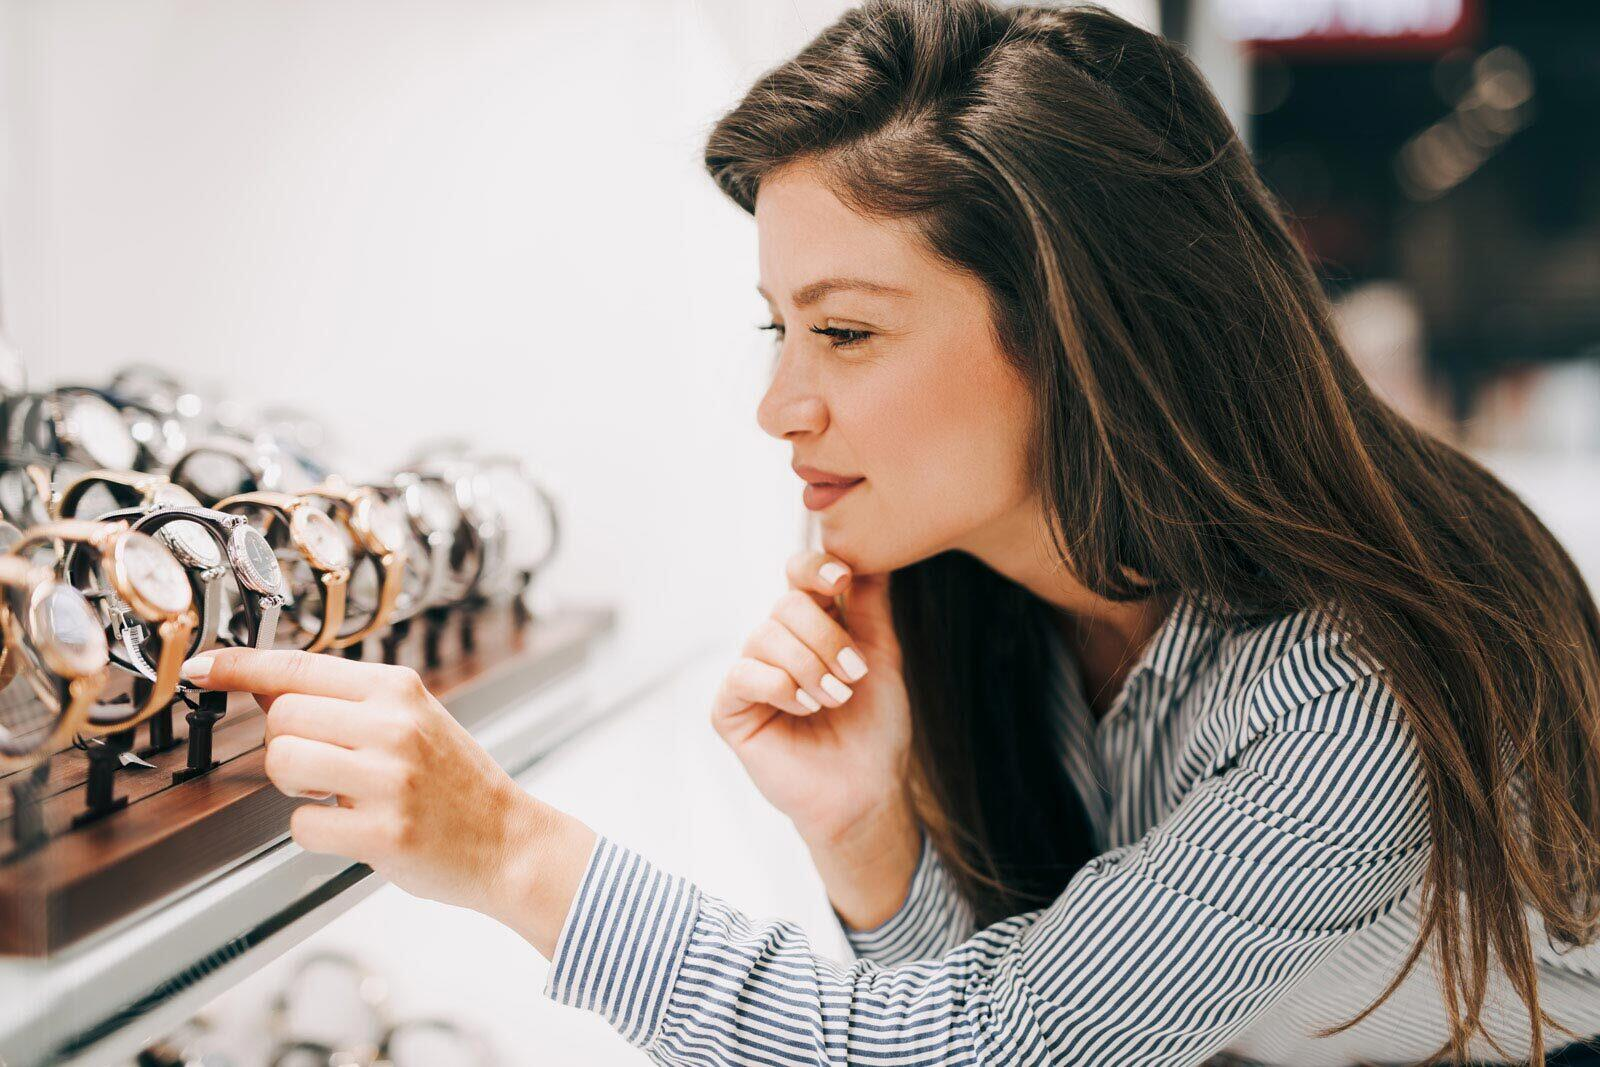 A woman in a store looking at a selection of jewelry.